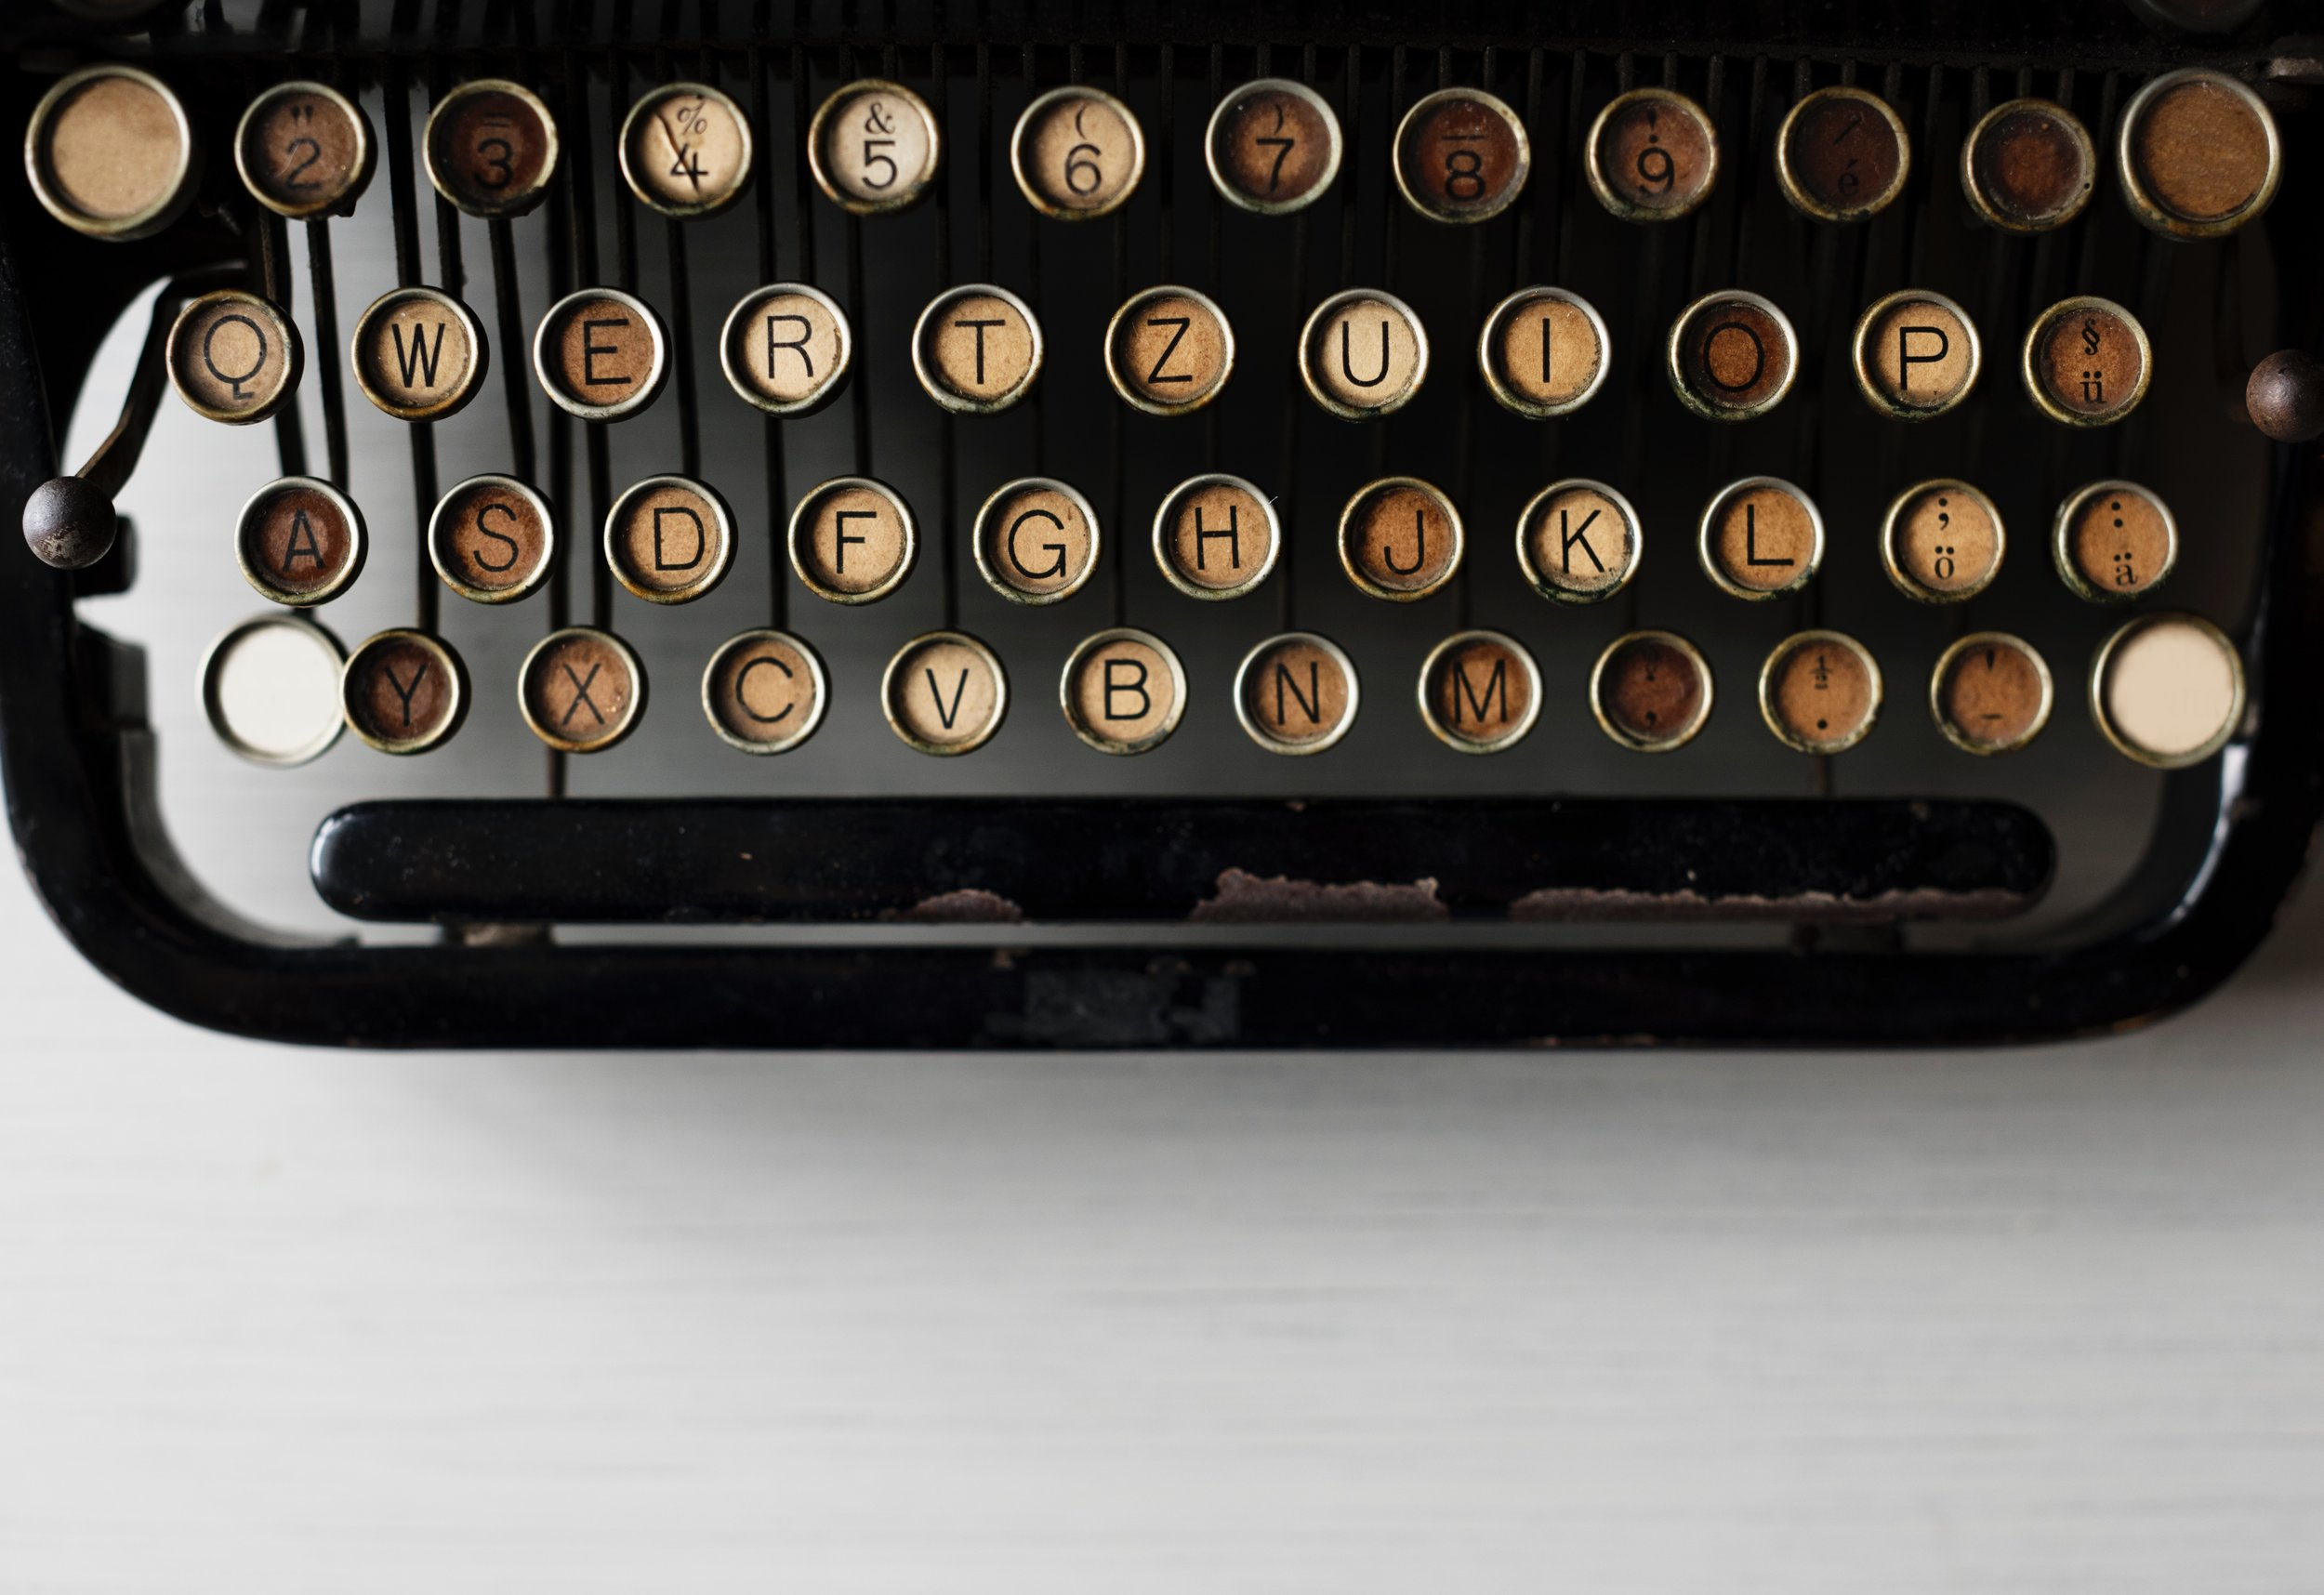 Business writing for busy consultants. - I also offer blog writing and editing, web + intranet copy, presentations, training materials, white papers and reports, for consulting and professional services firms.